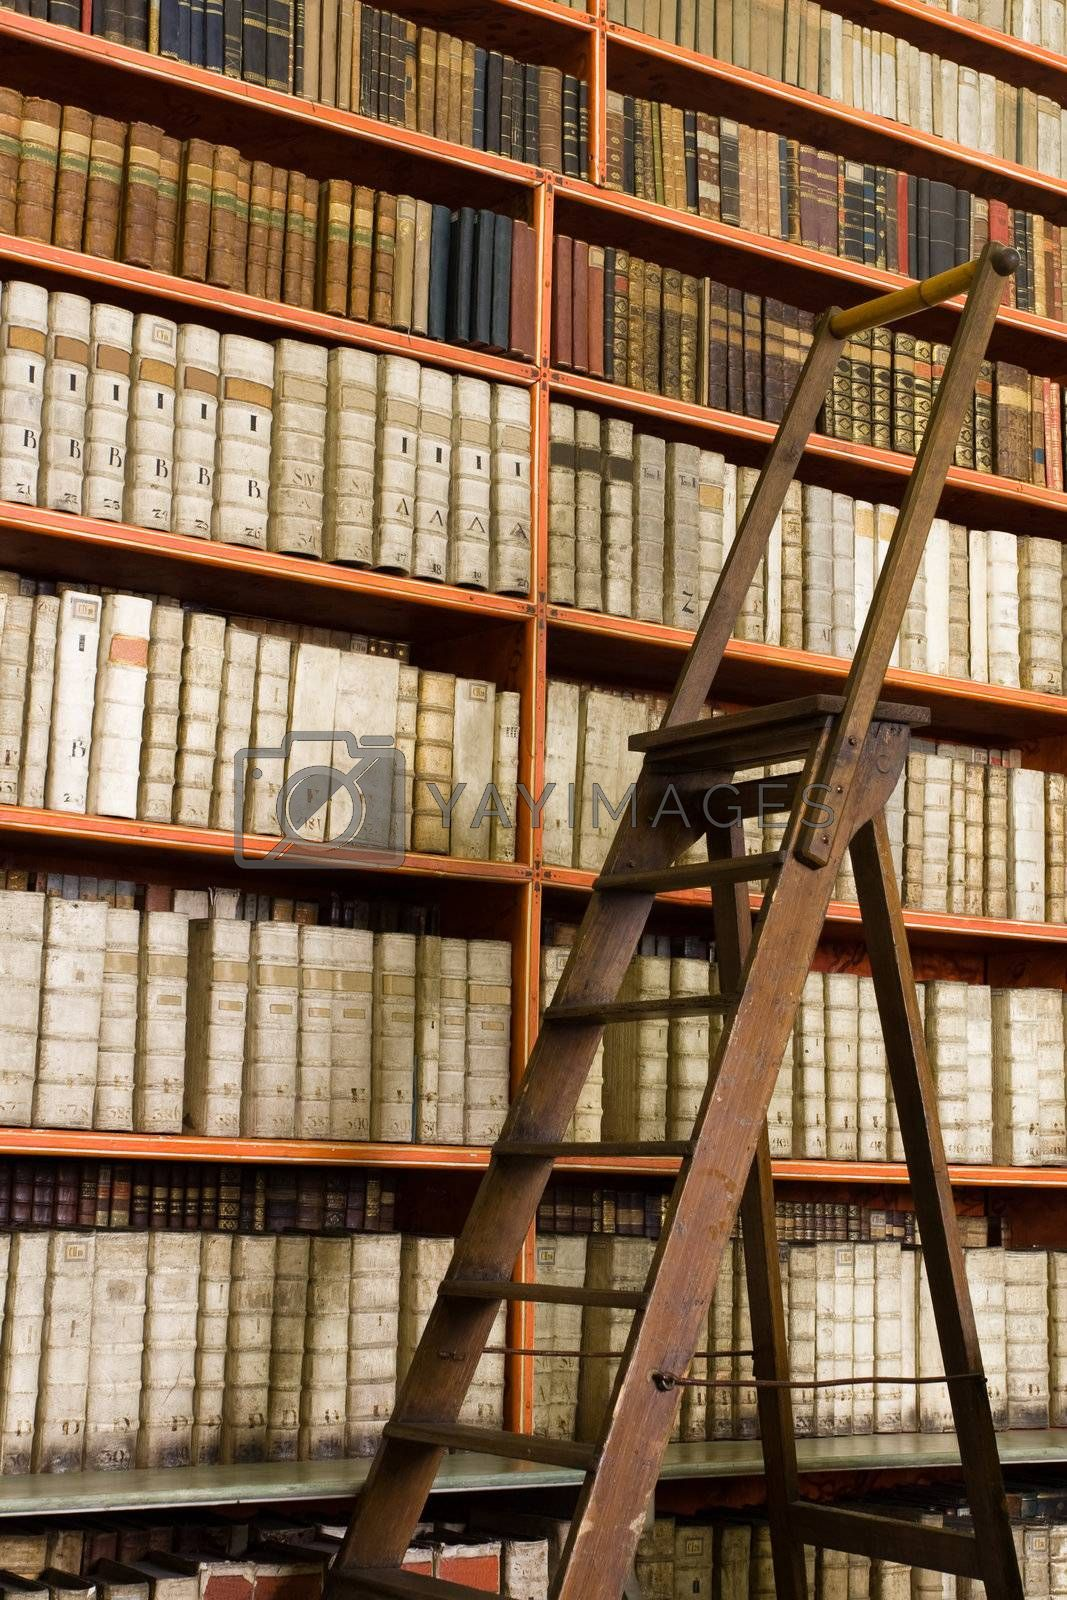 Library full of aged books and ladder by SergeyAK